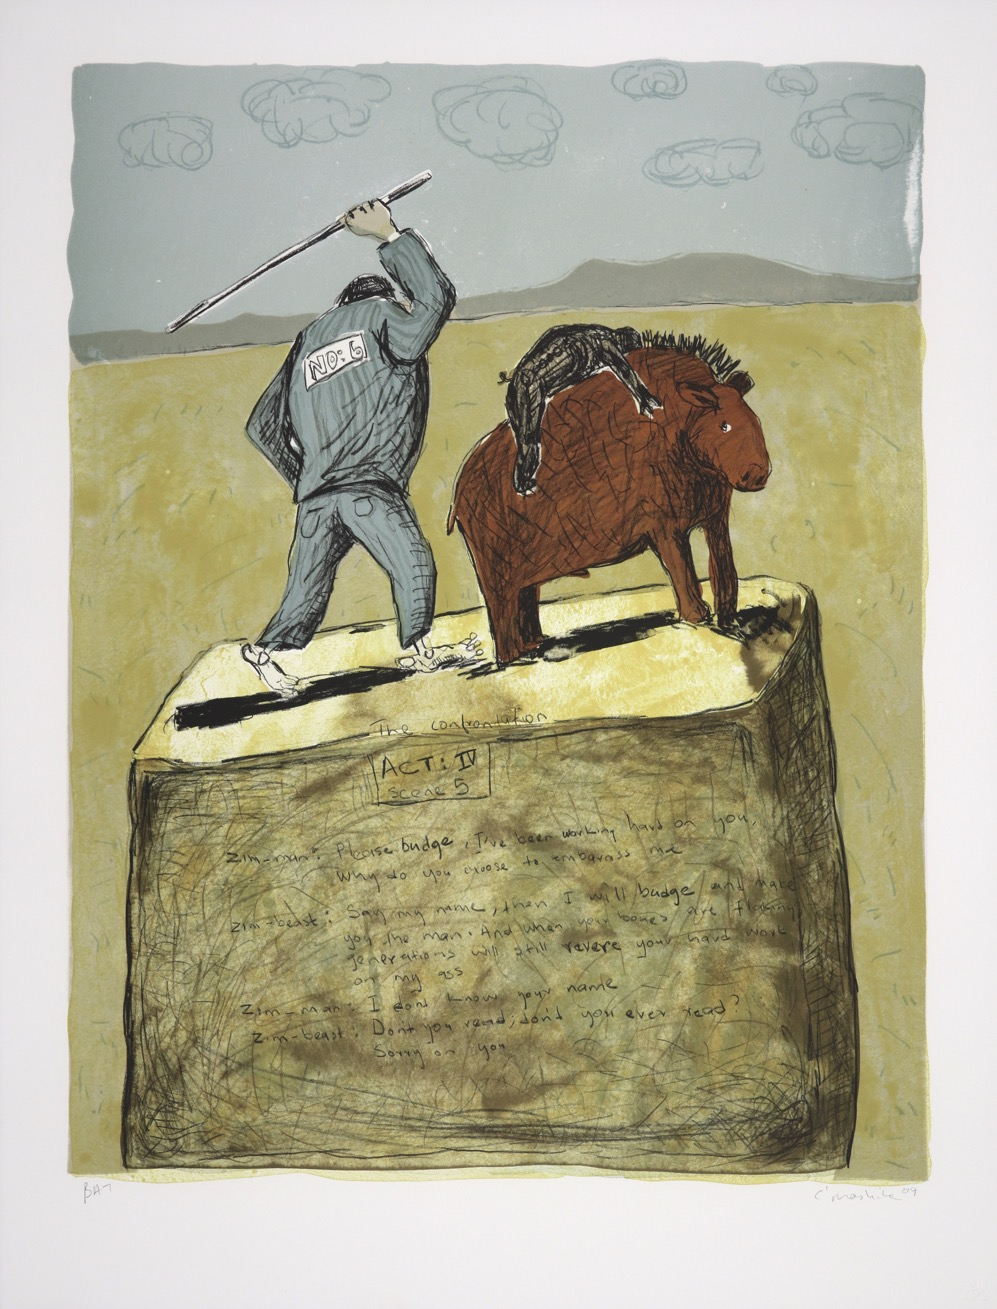 Suited man beating a beast with a creature on its back, both on a raised plinth.